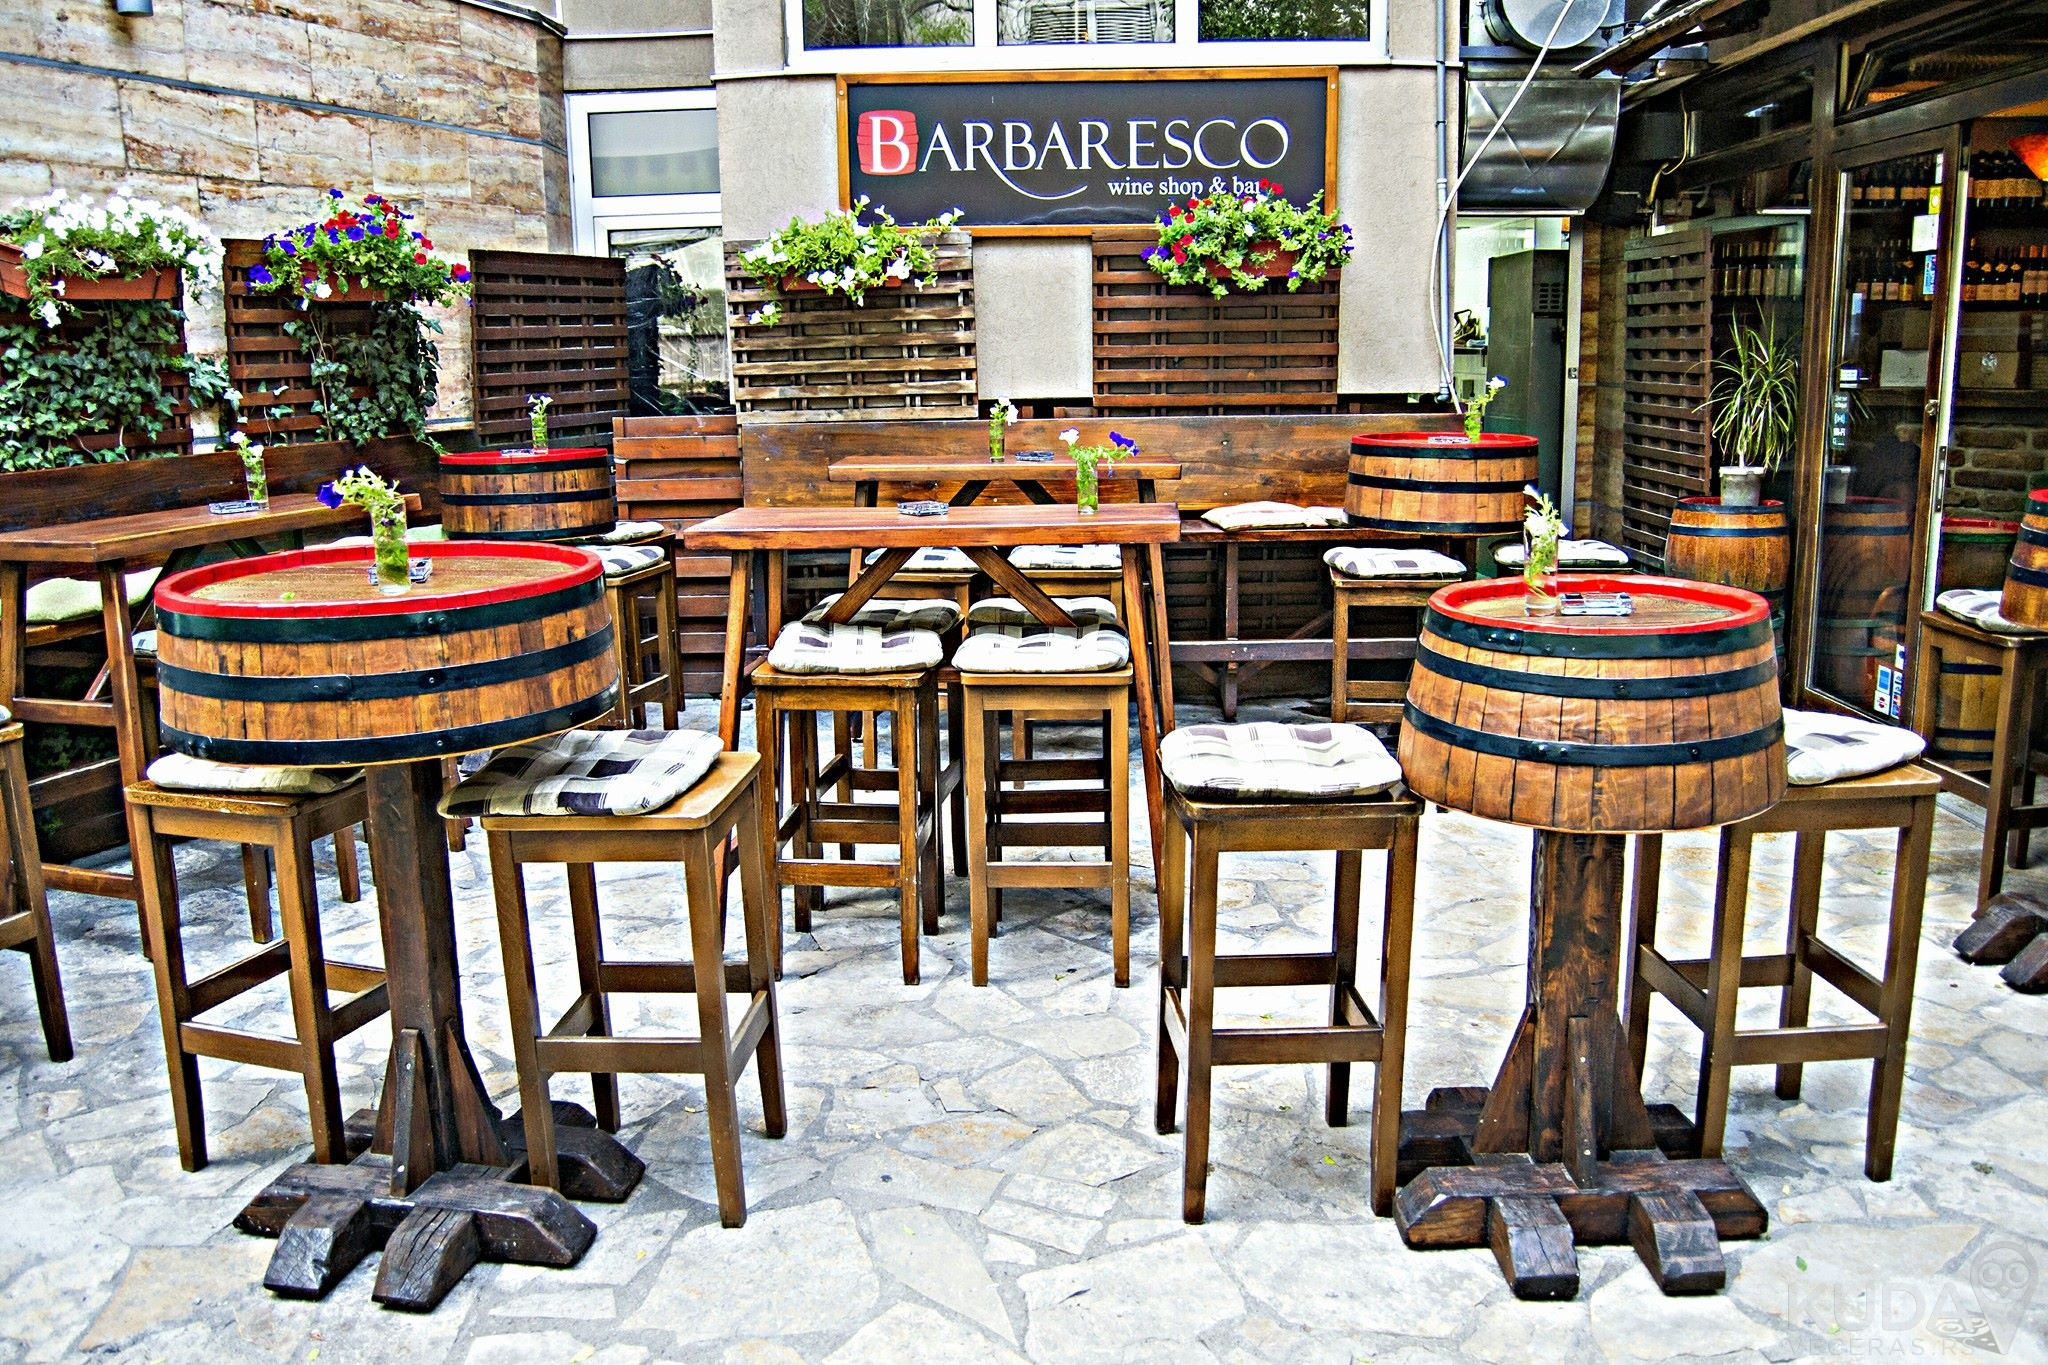 Veliki izbor vina u Barbaresco Wine Shop & Baru